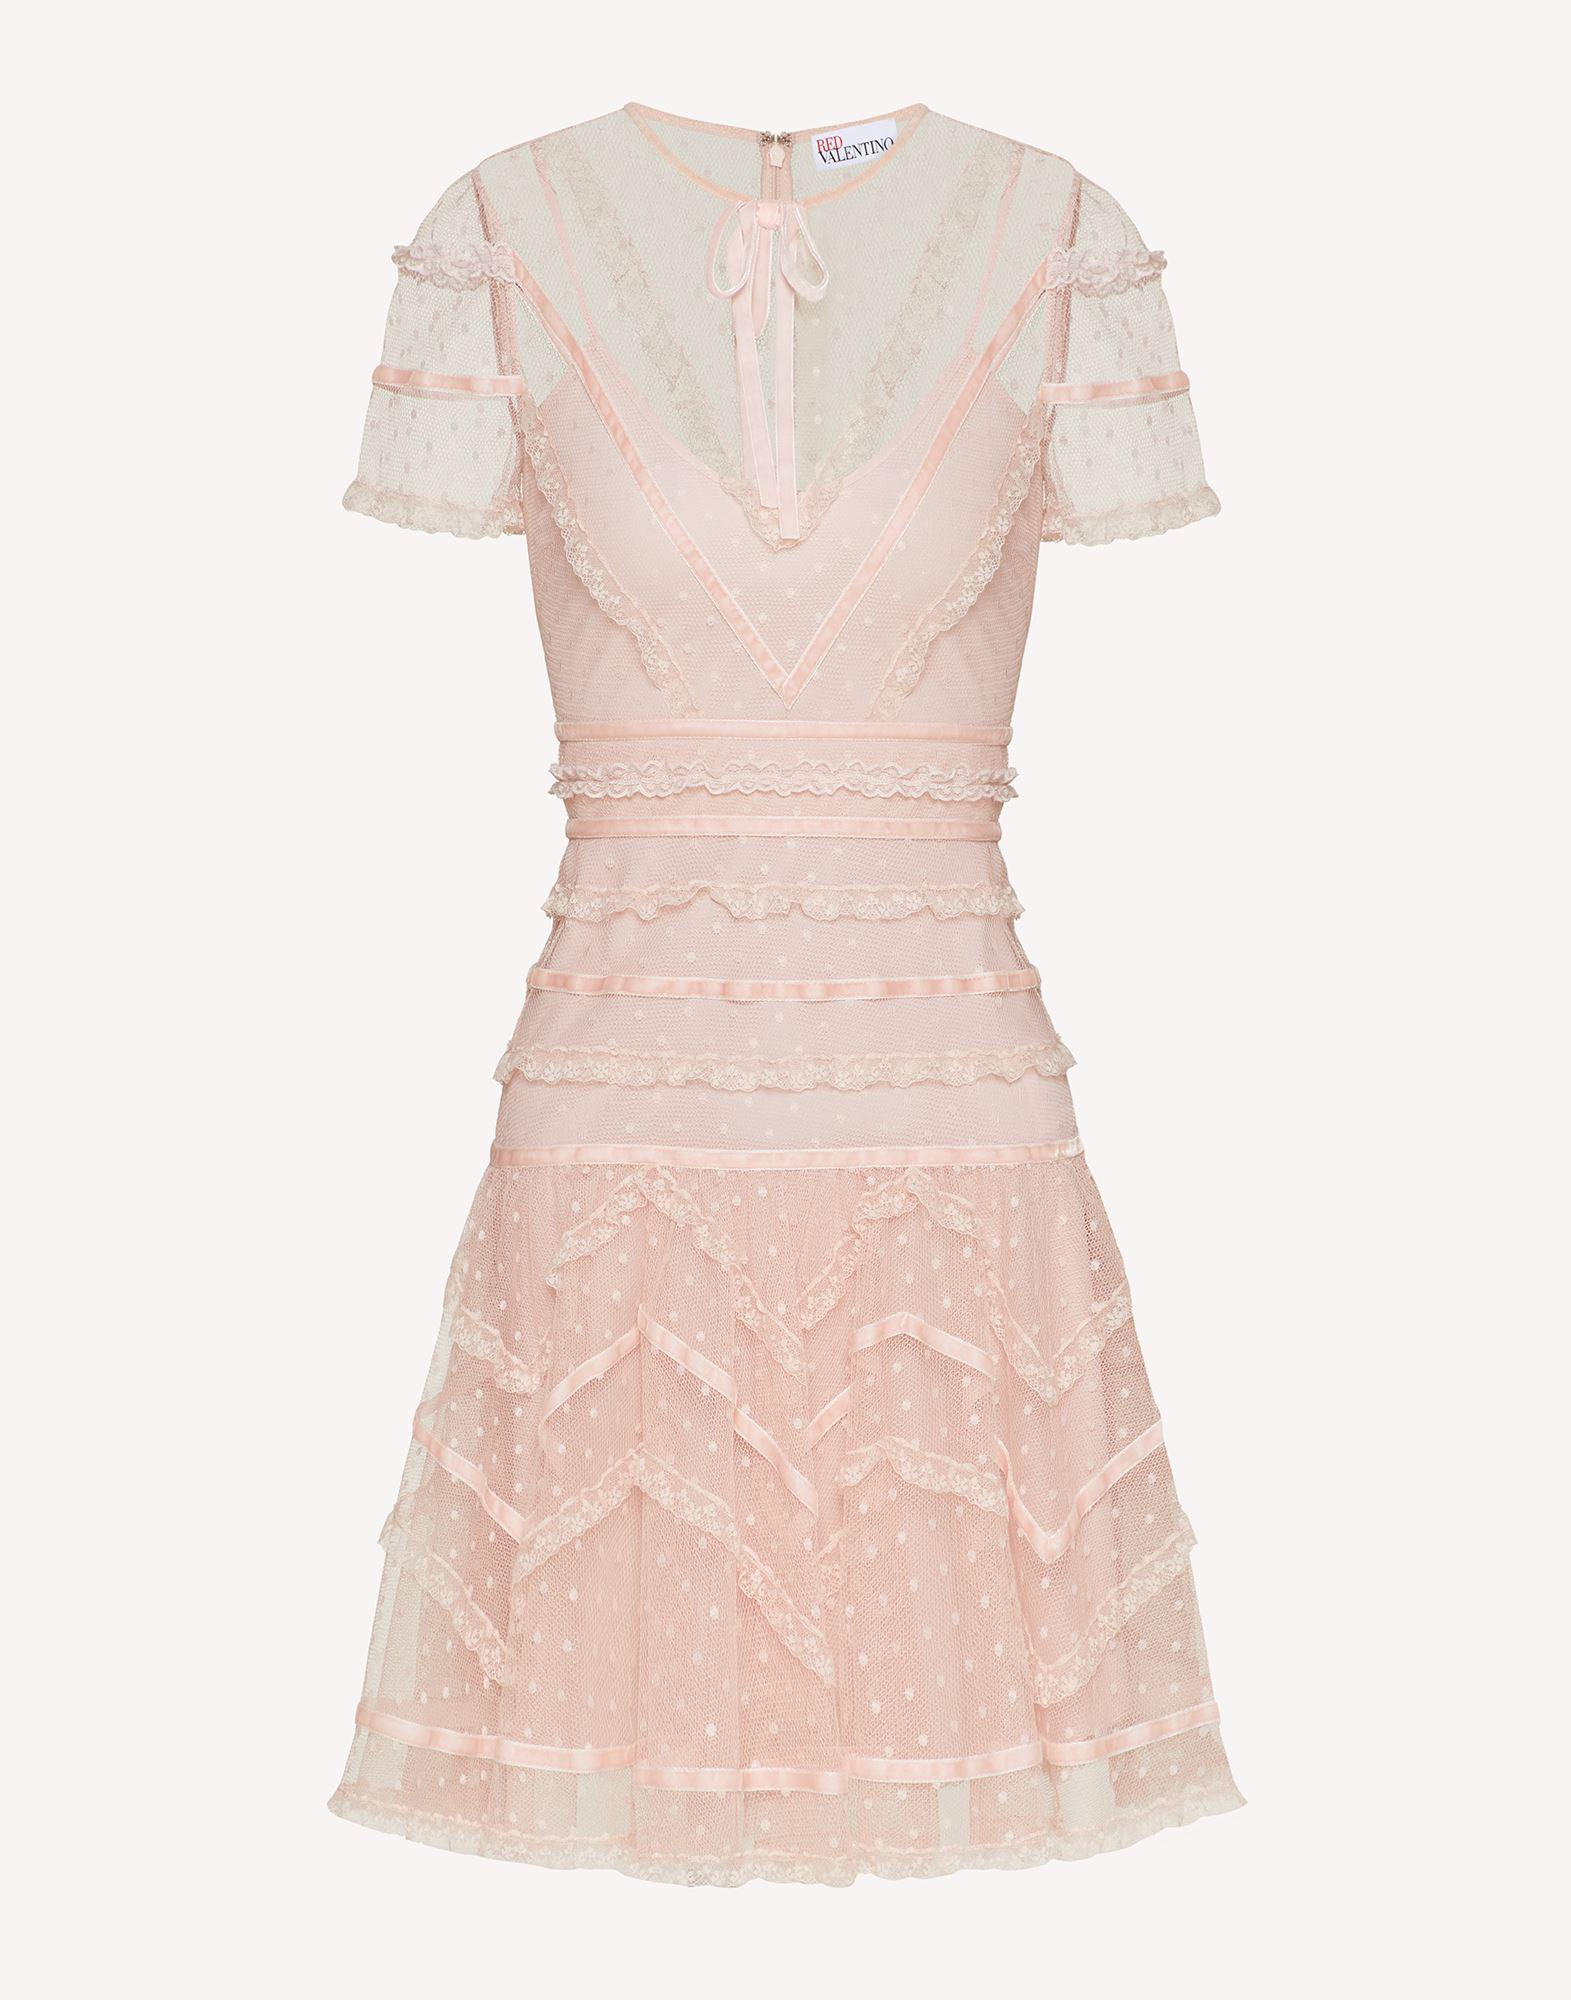 POINT D'ESPRIT TULLE DRESS WITH LACE AND VELVET RIBBONS 4